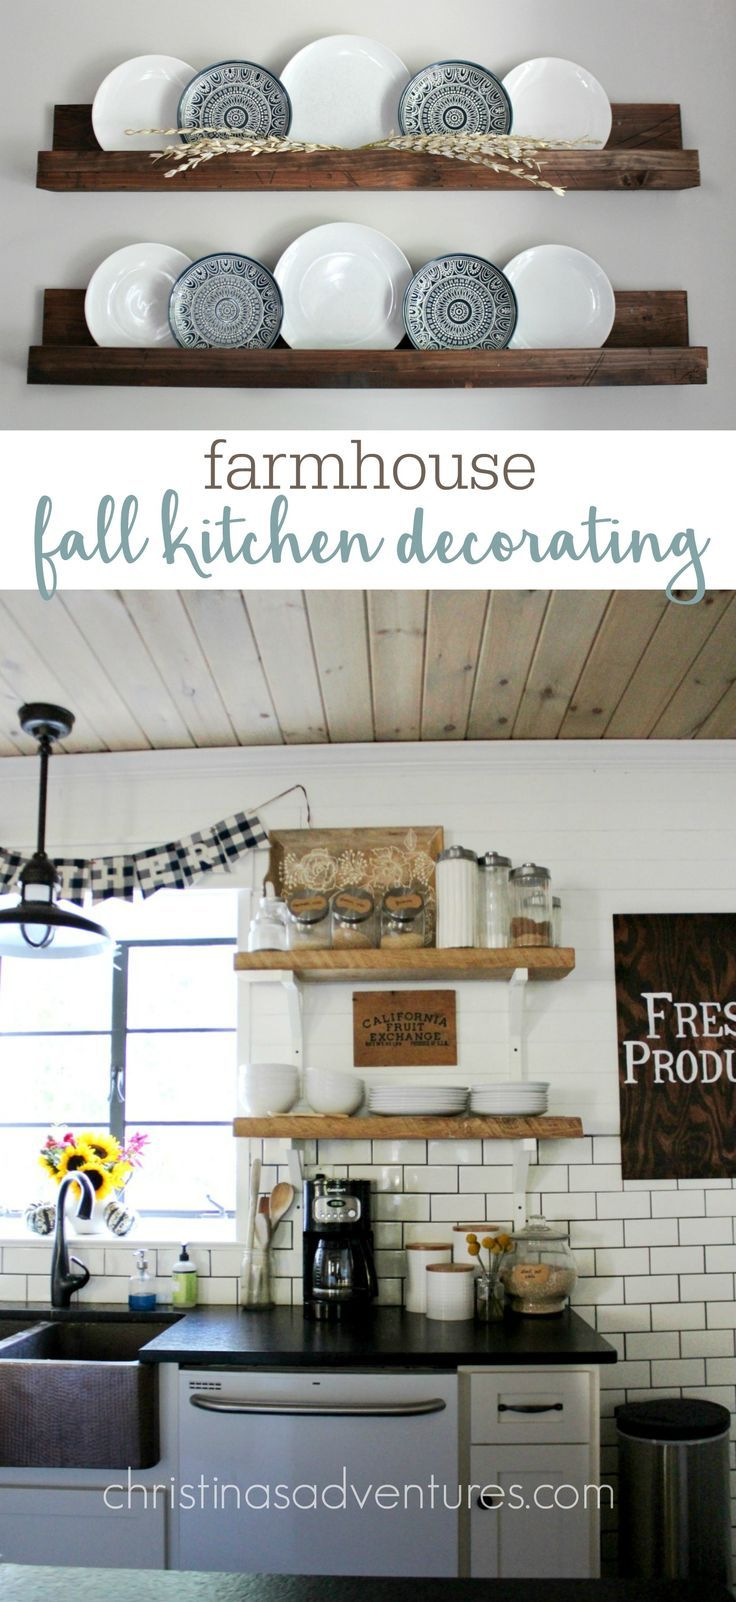 Adventures In Decorating Our Fall Kitchen: 450 Best Images About Fall DIY & Decor On Pinterest